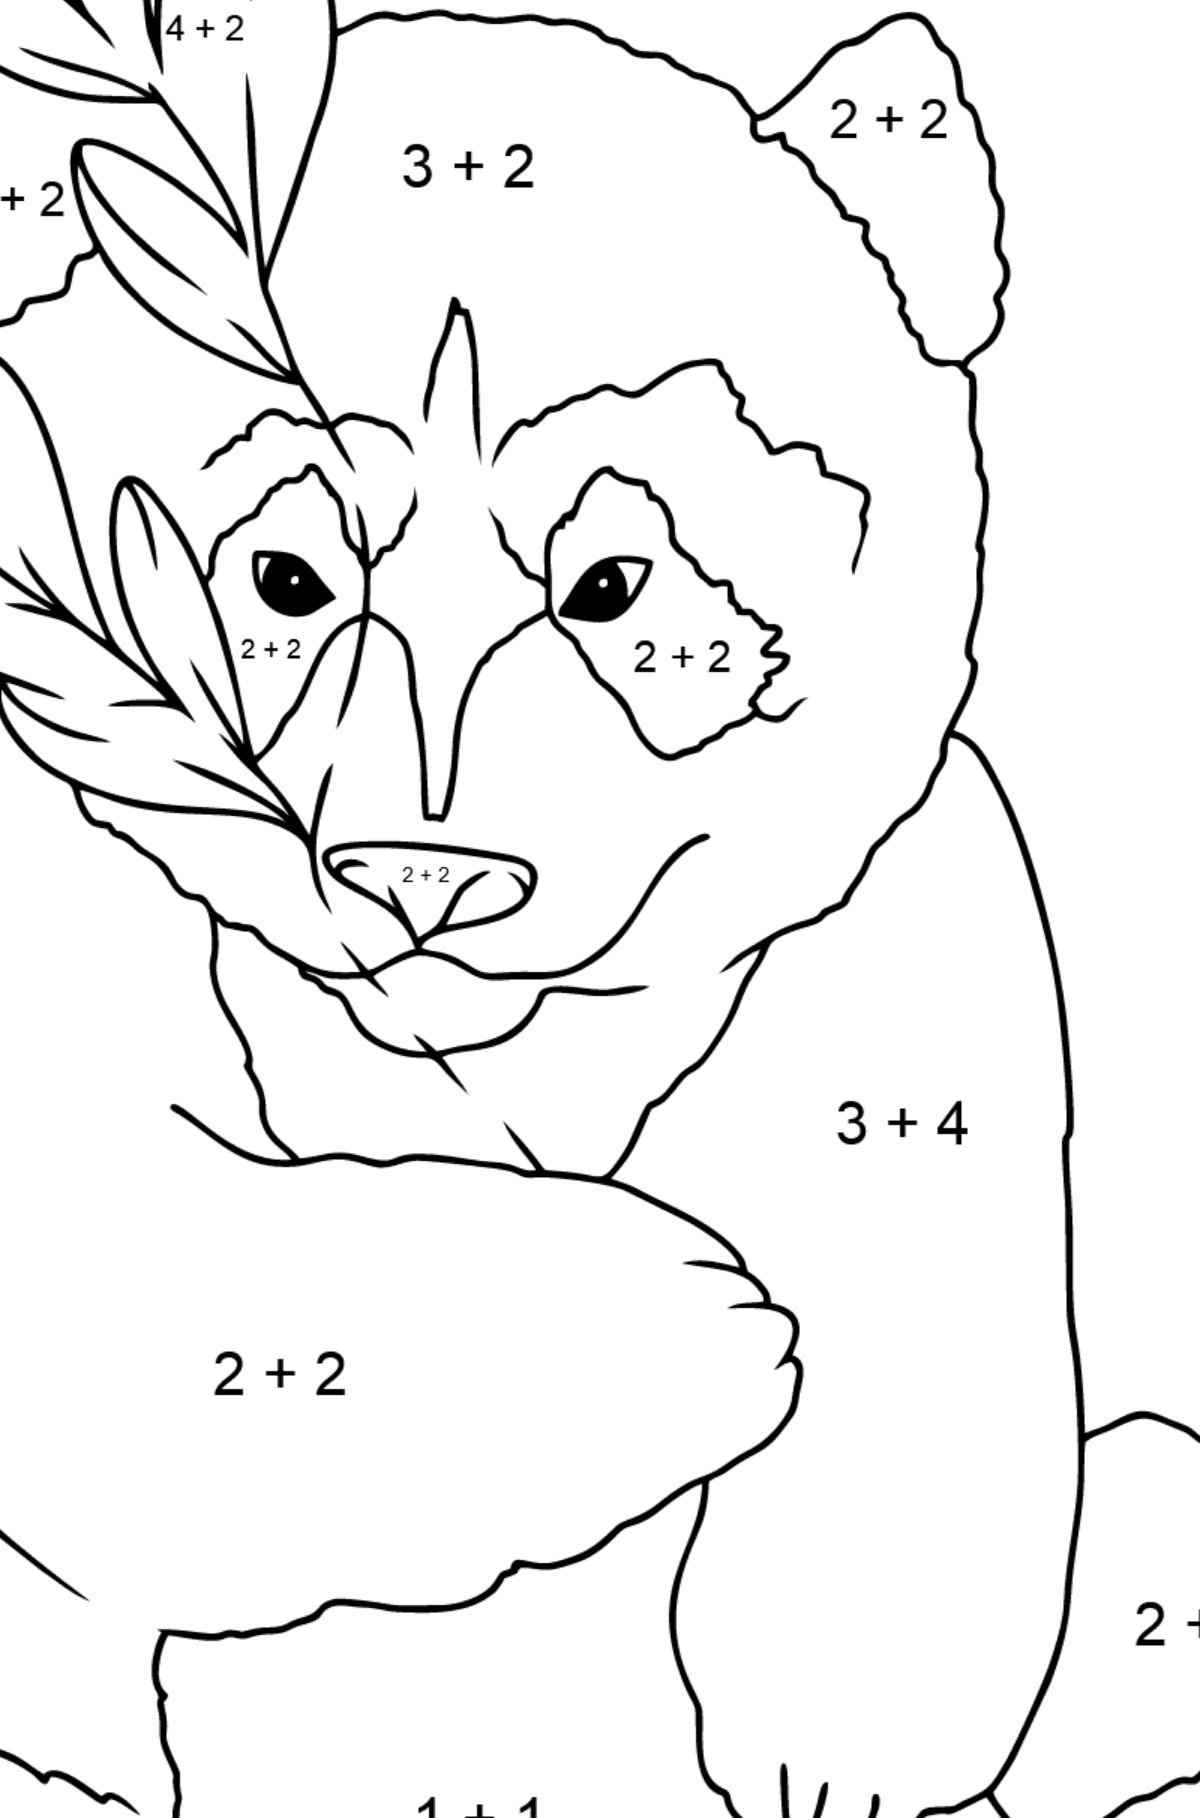 Coloring Page - A Panda is Hugging Bamboo Leaves - Math Coloring - Addition for Kids